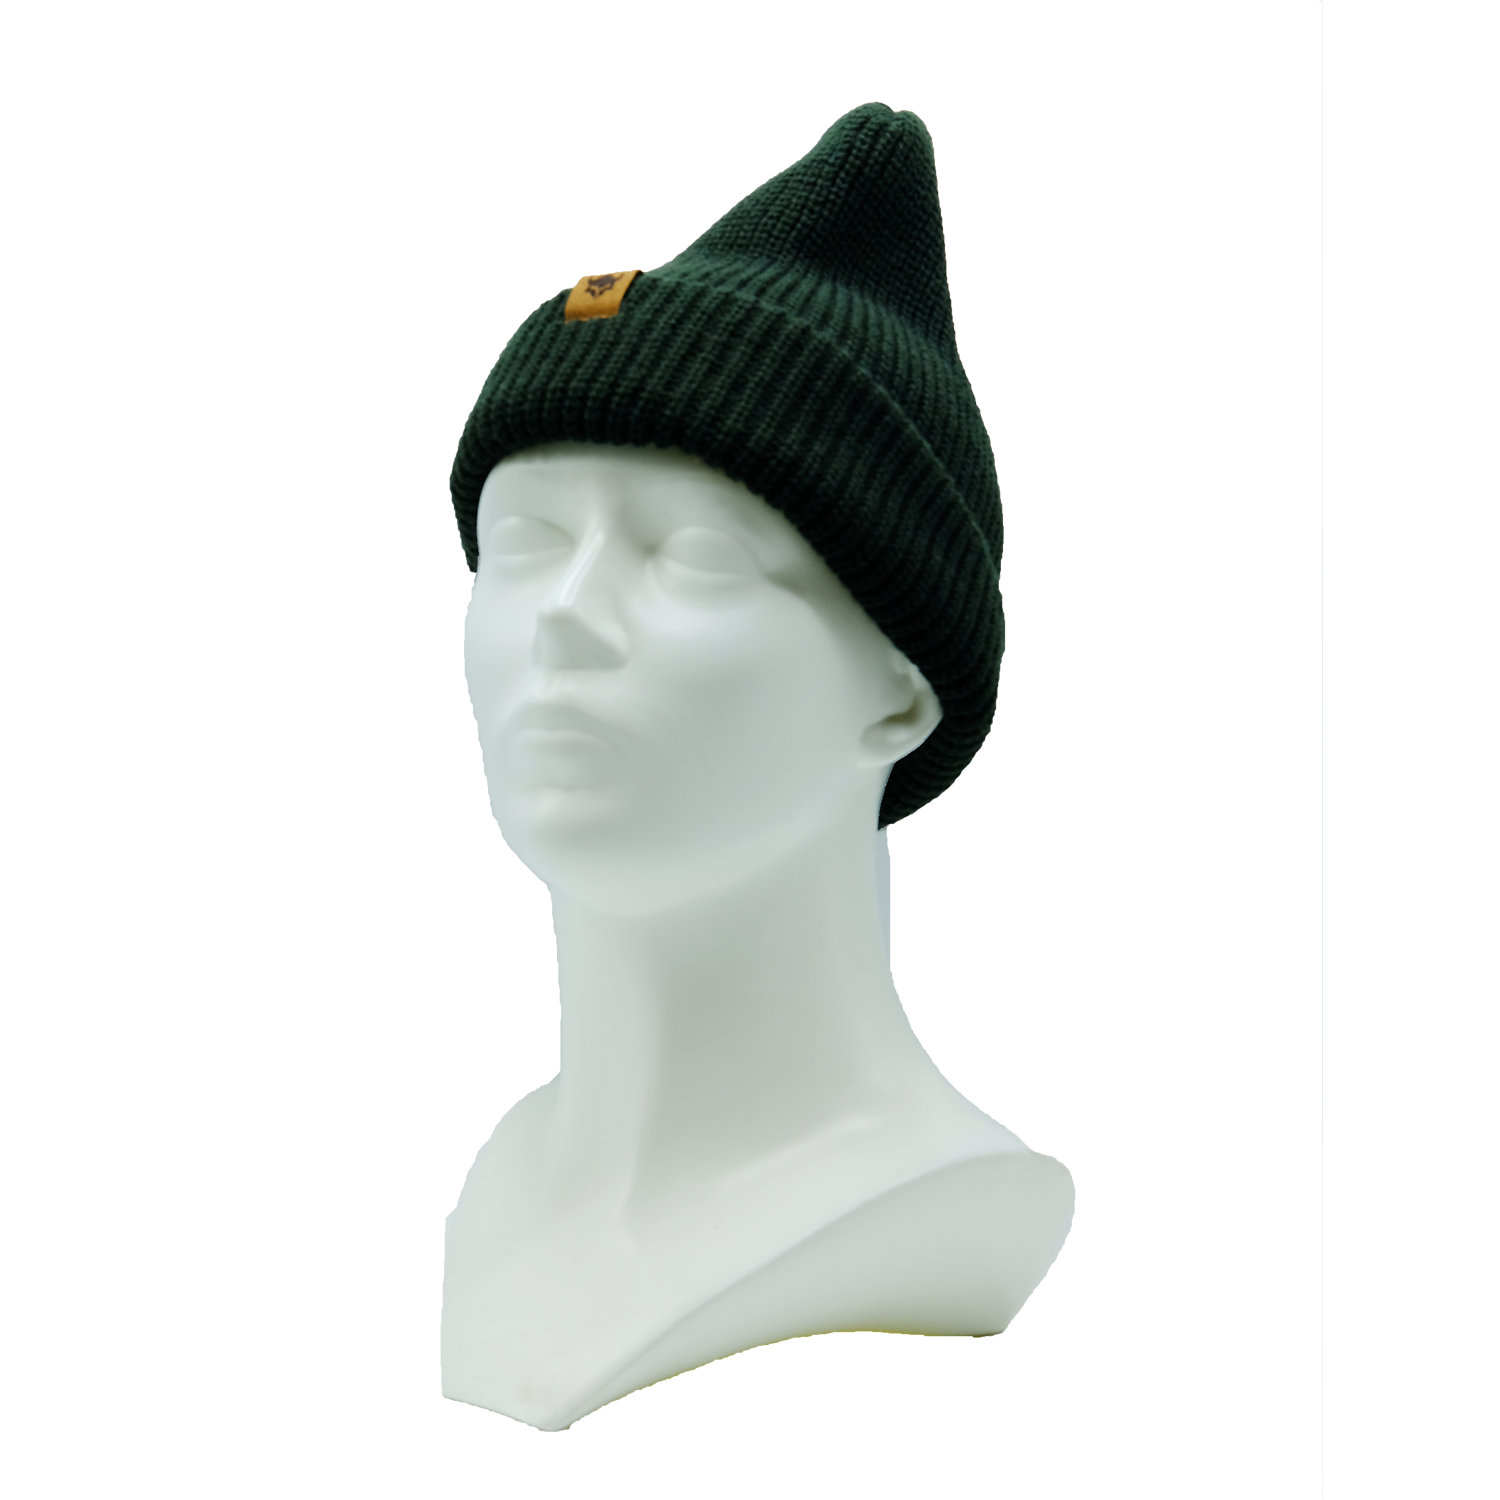 Design your own Beanies